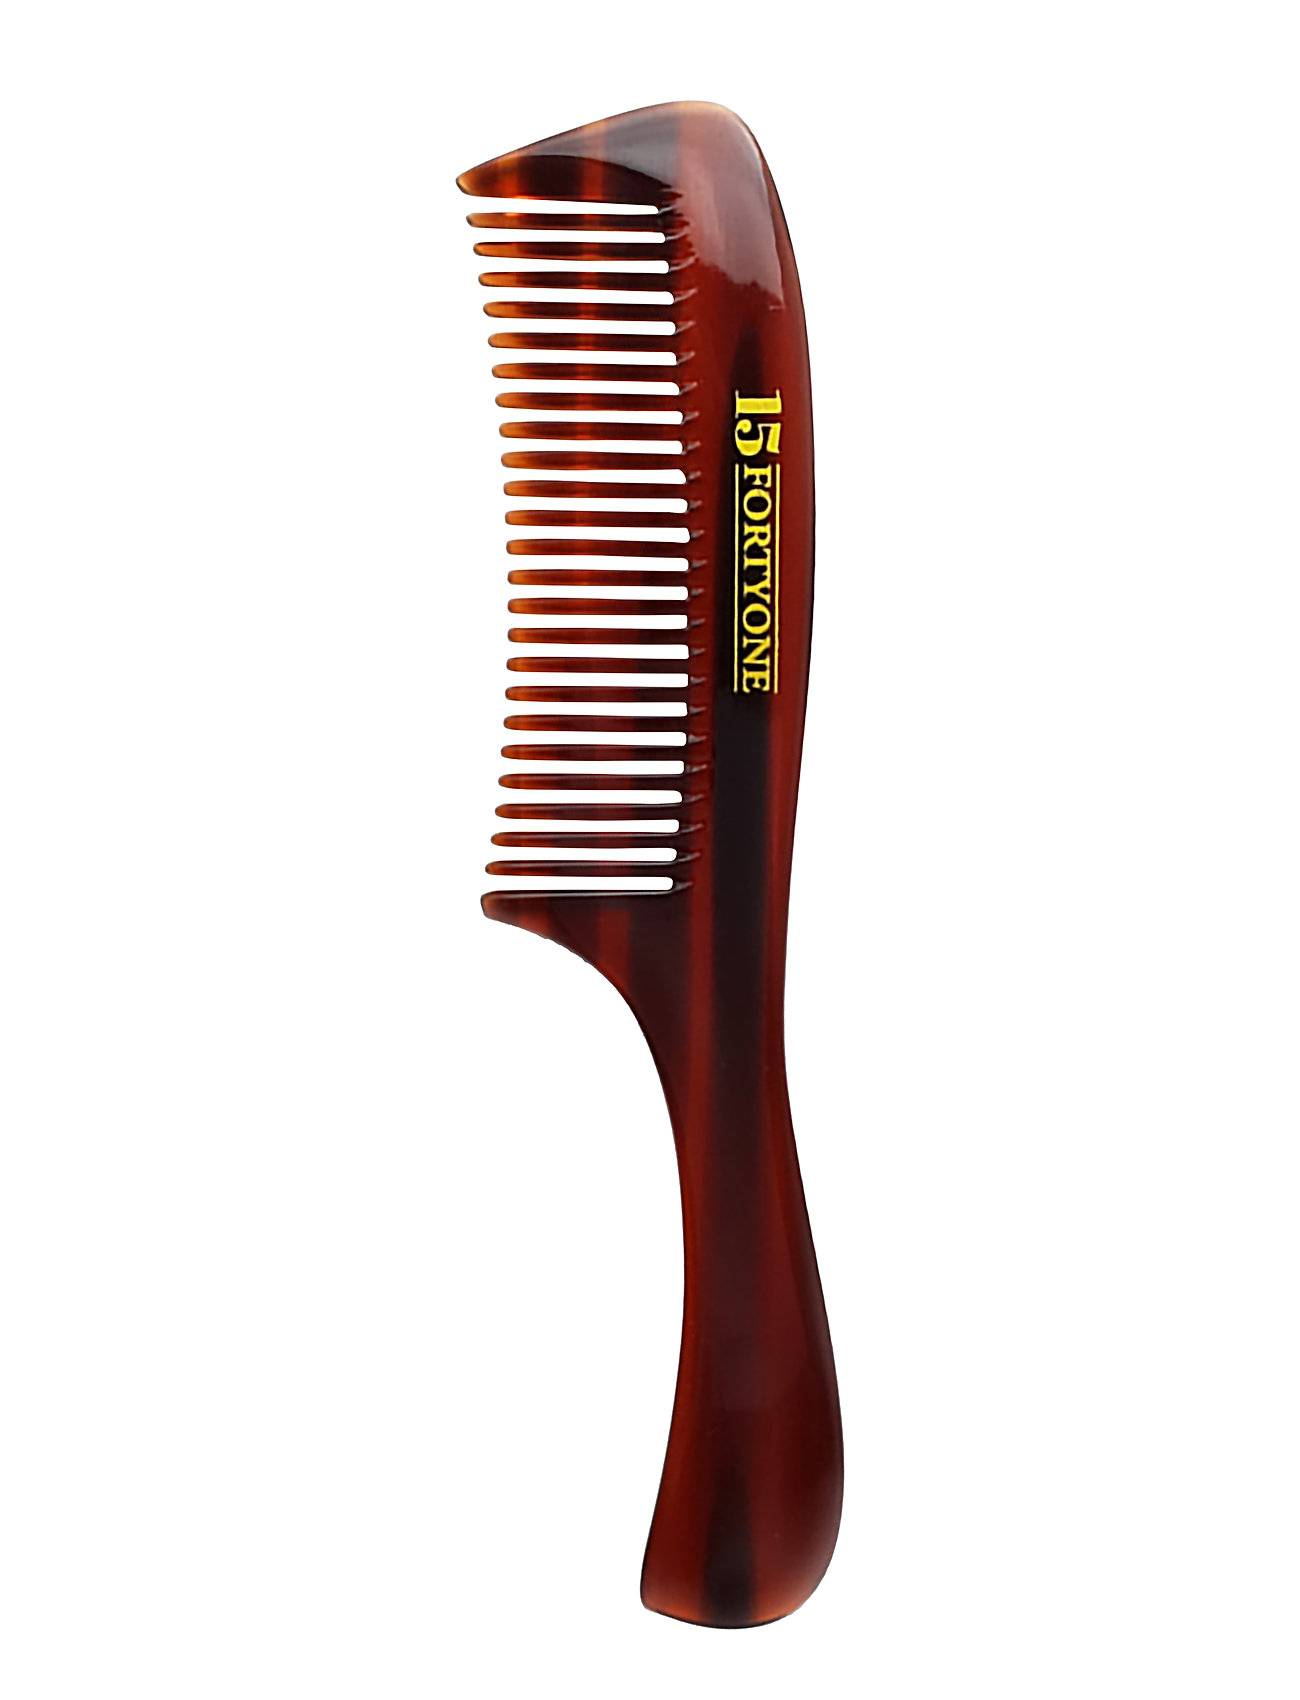 1541 of London Rounded Pocket Beard Comb